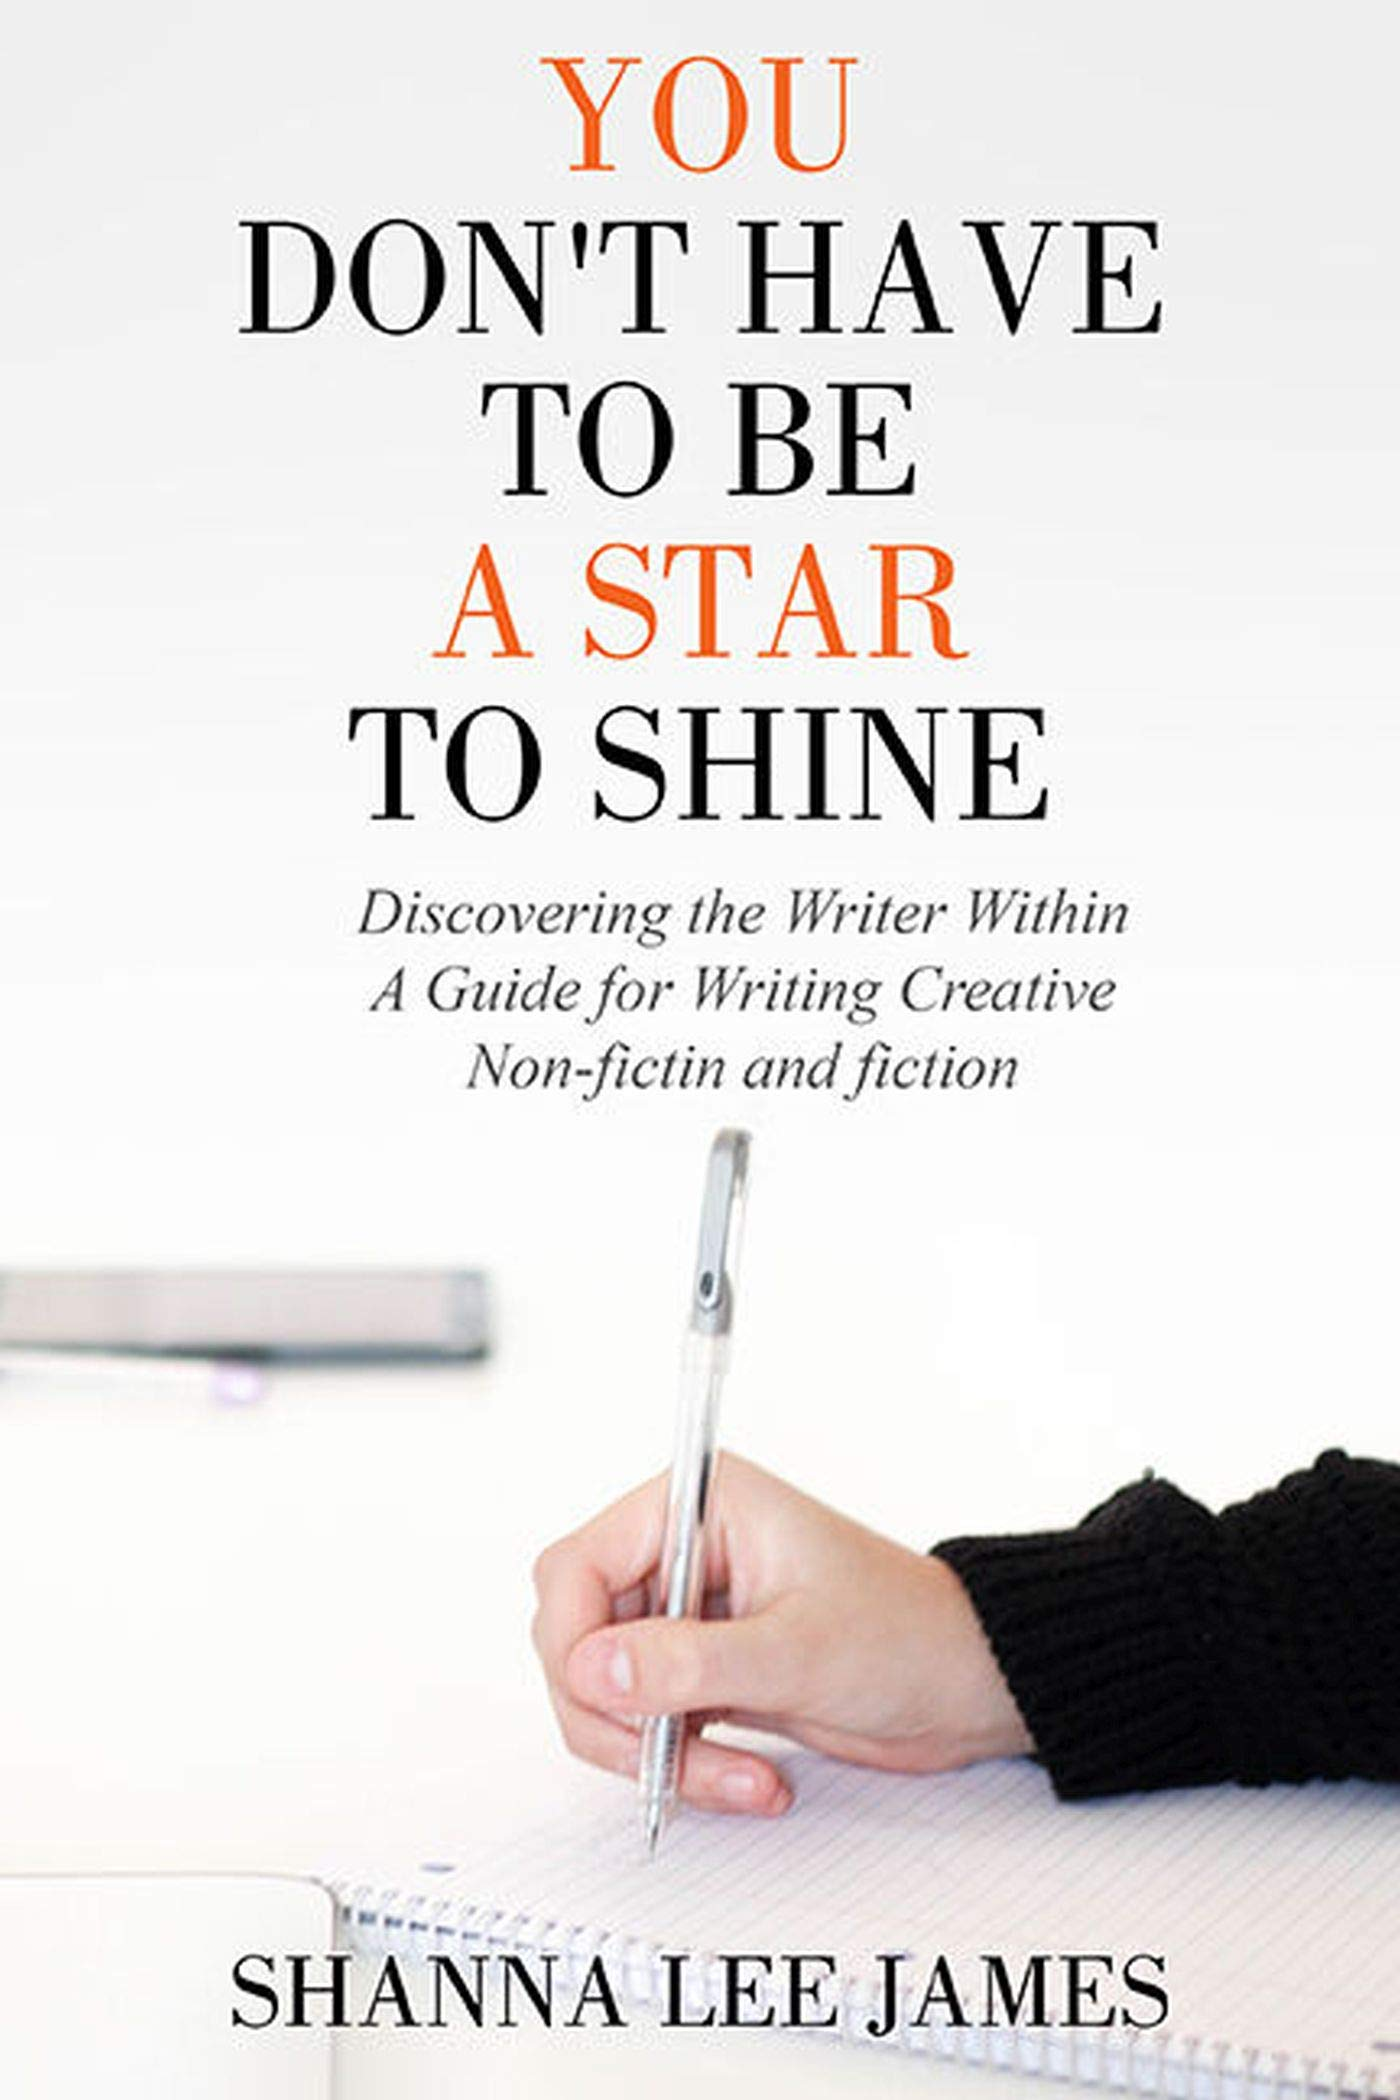 You Don't Have to Be a Star to Shine: Discovering the Writer Within/ A Guide for Writing Creative Non-fiction and fiction